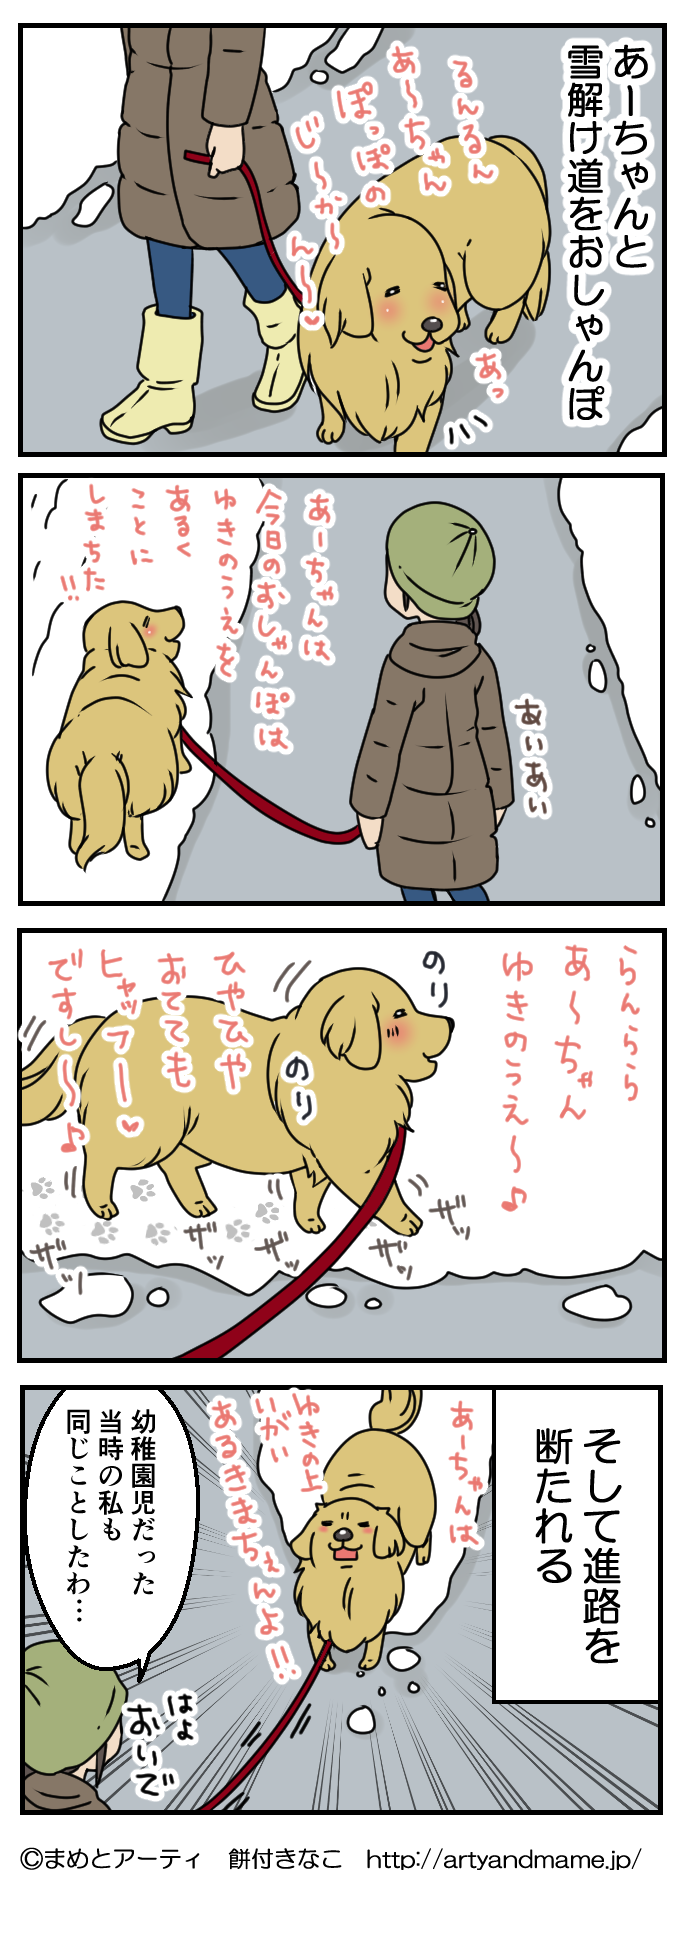 20170116.png